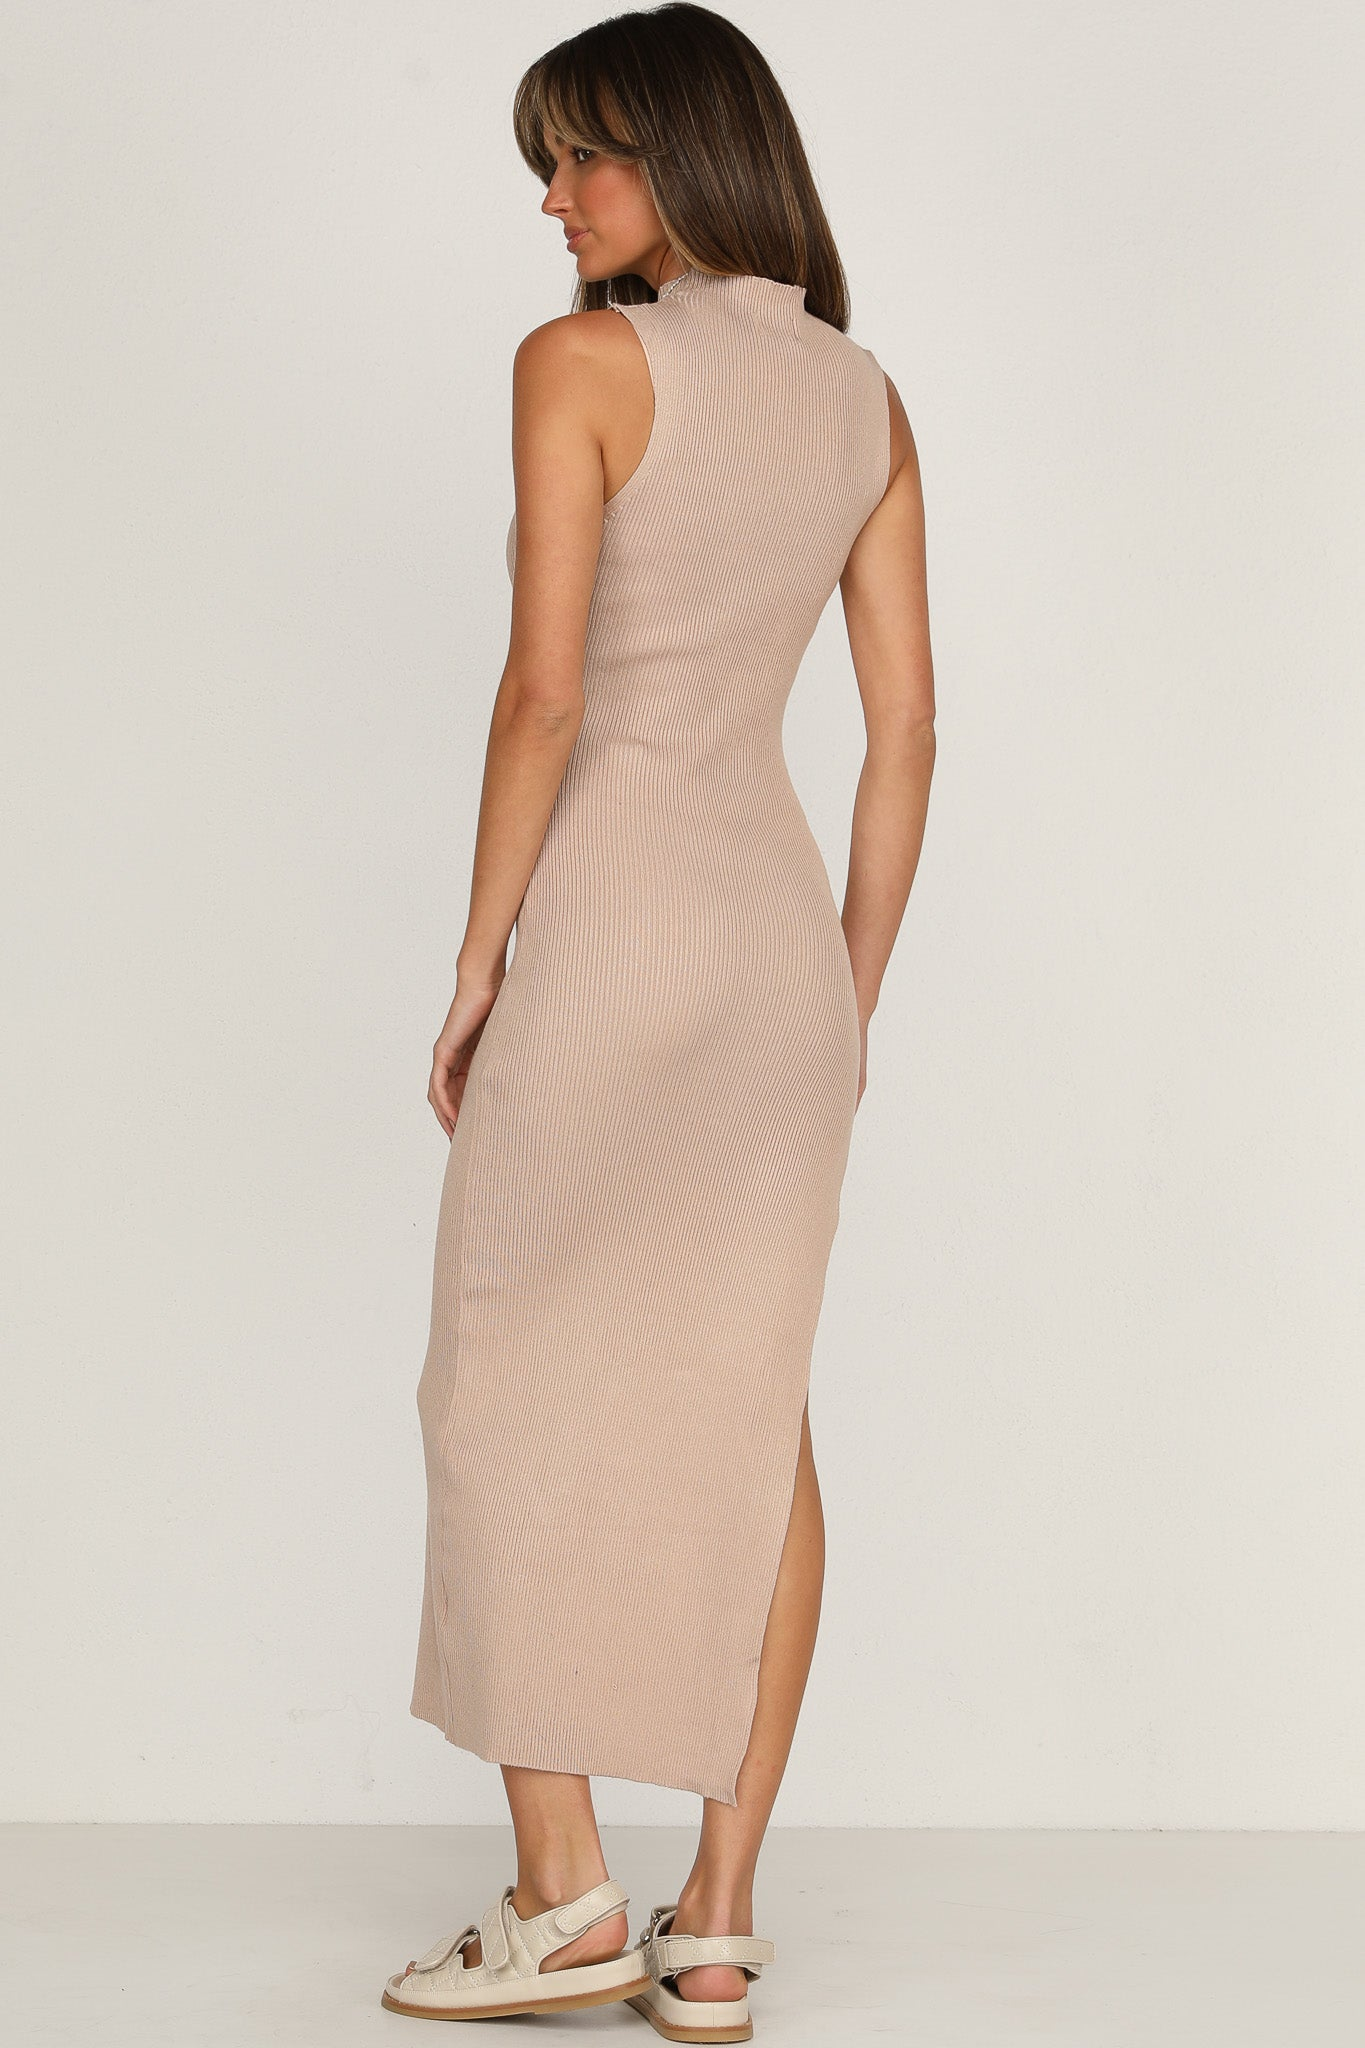 Huxley Dress (Tan)